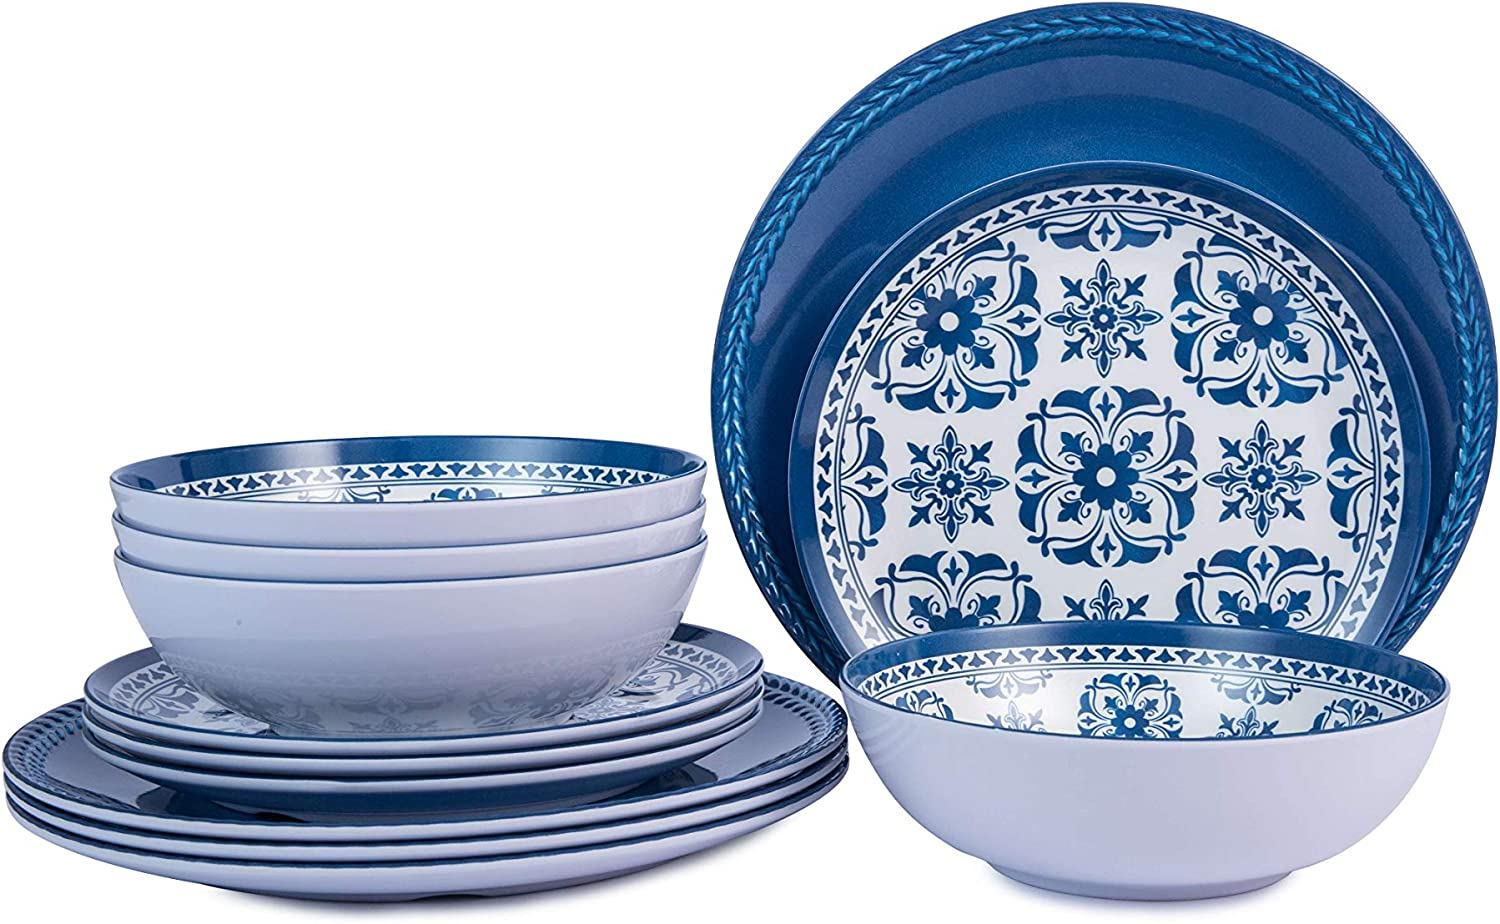 Melamine Dinnerware Set for 4-12pcs Outdoor Plates and Bowls Set , Dishwasher Safe, Blue Flower